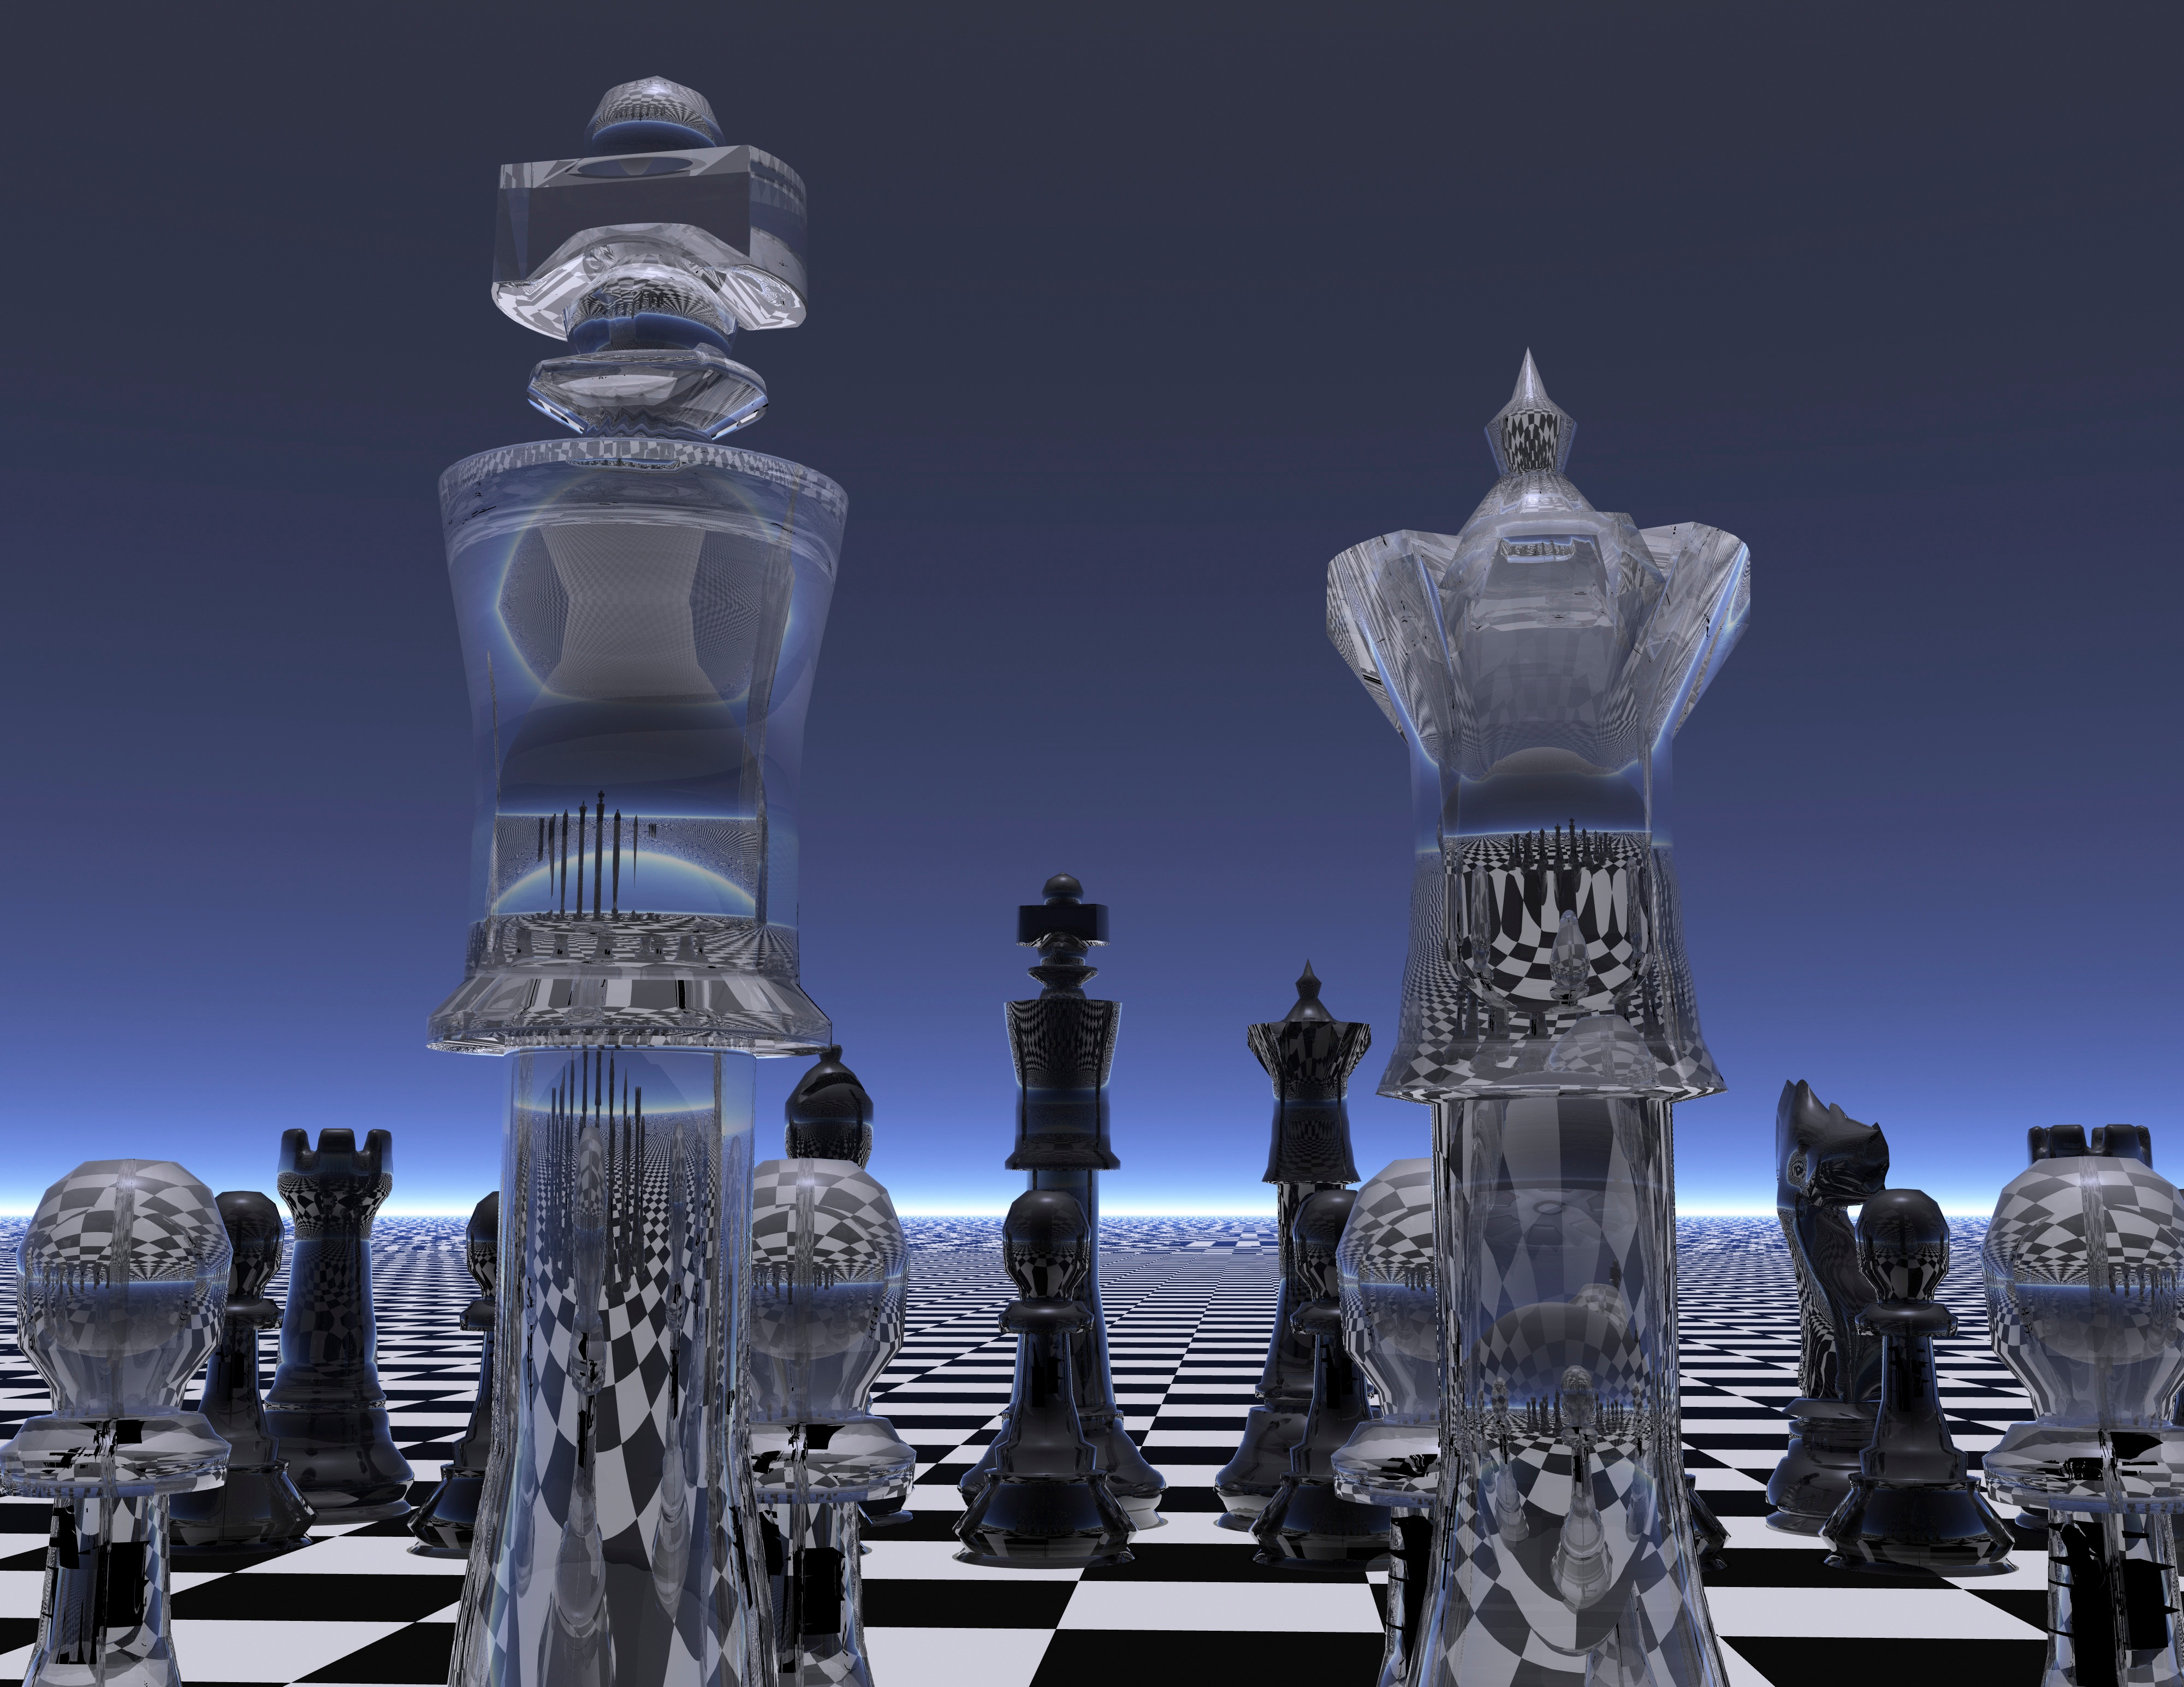 Chess Set in an Article About Grant Funding Strategies